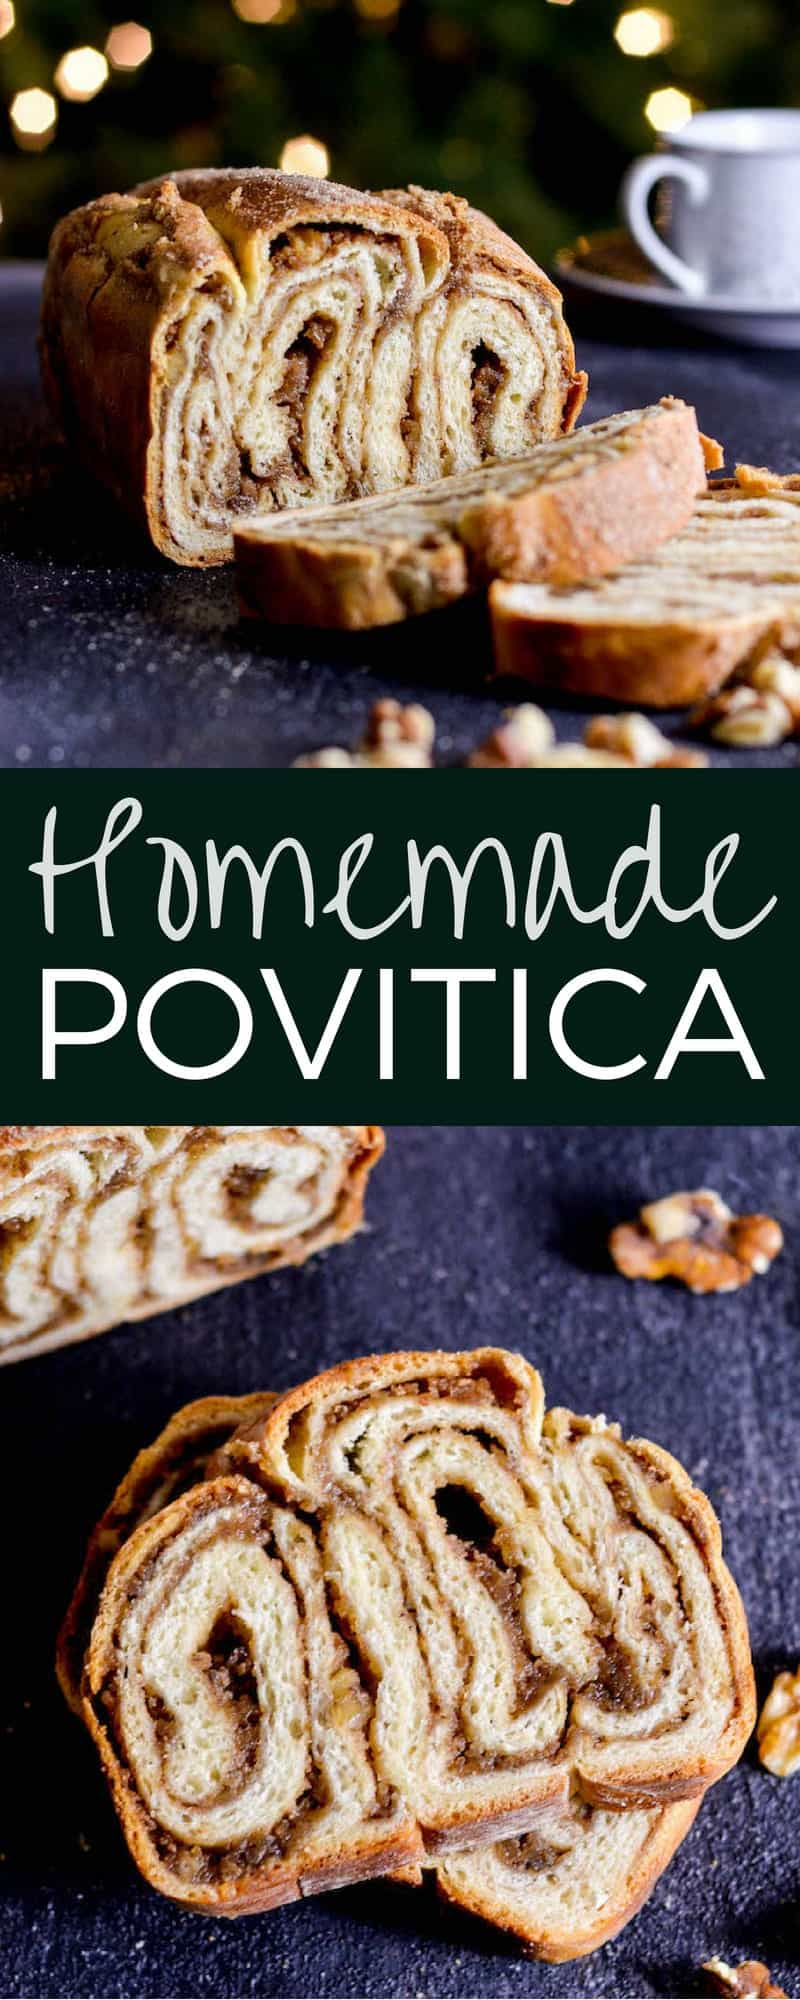 This Homemade Povitica Recipe is a beautiful and delicious treat that's perfect to give as a gift for the holidays! It's a rich cinnamon swirl bread with a cinnamon walnut filling that is an old family favorite! #povitica #bread #homemadebread #poviticarecipe #recipe #holidays #christmas